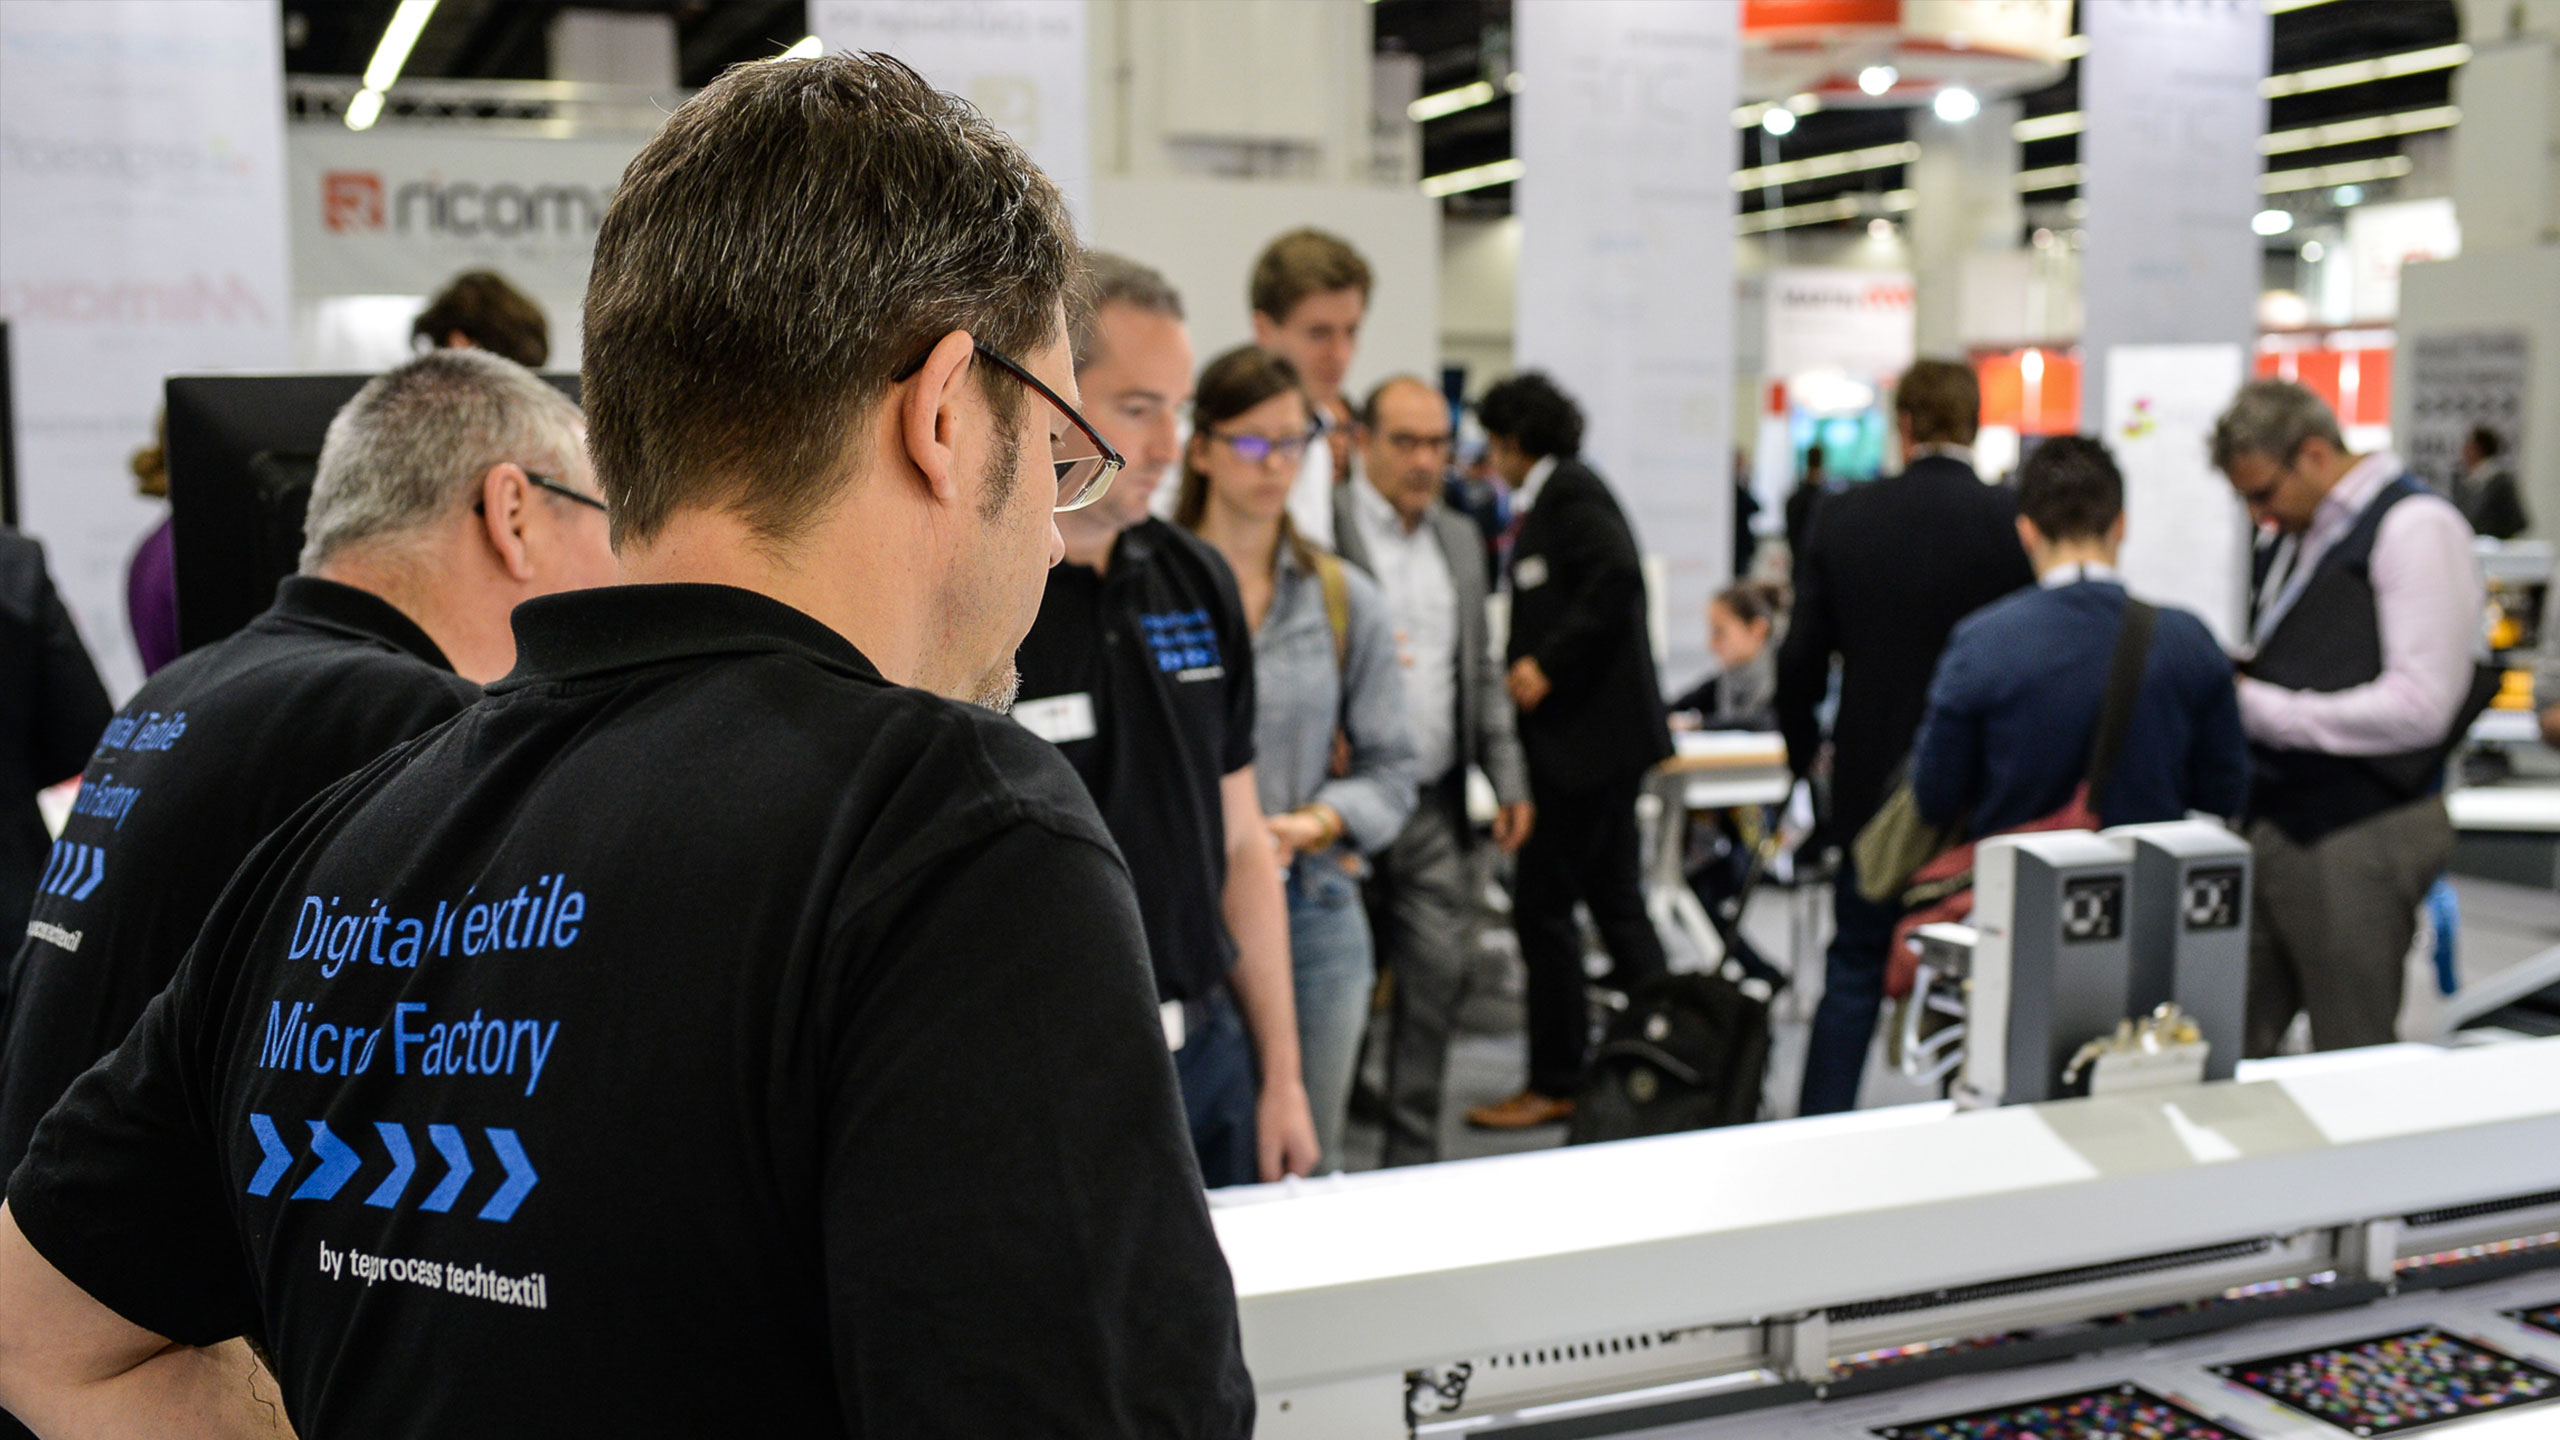 Micro-factories are the centre of emphasis at Texprocess in Frankfurt am Main